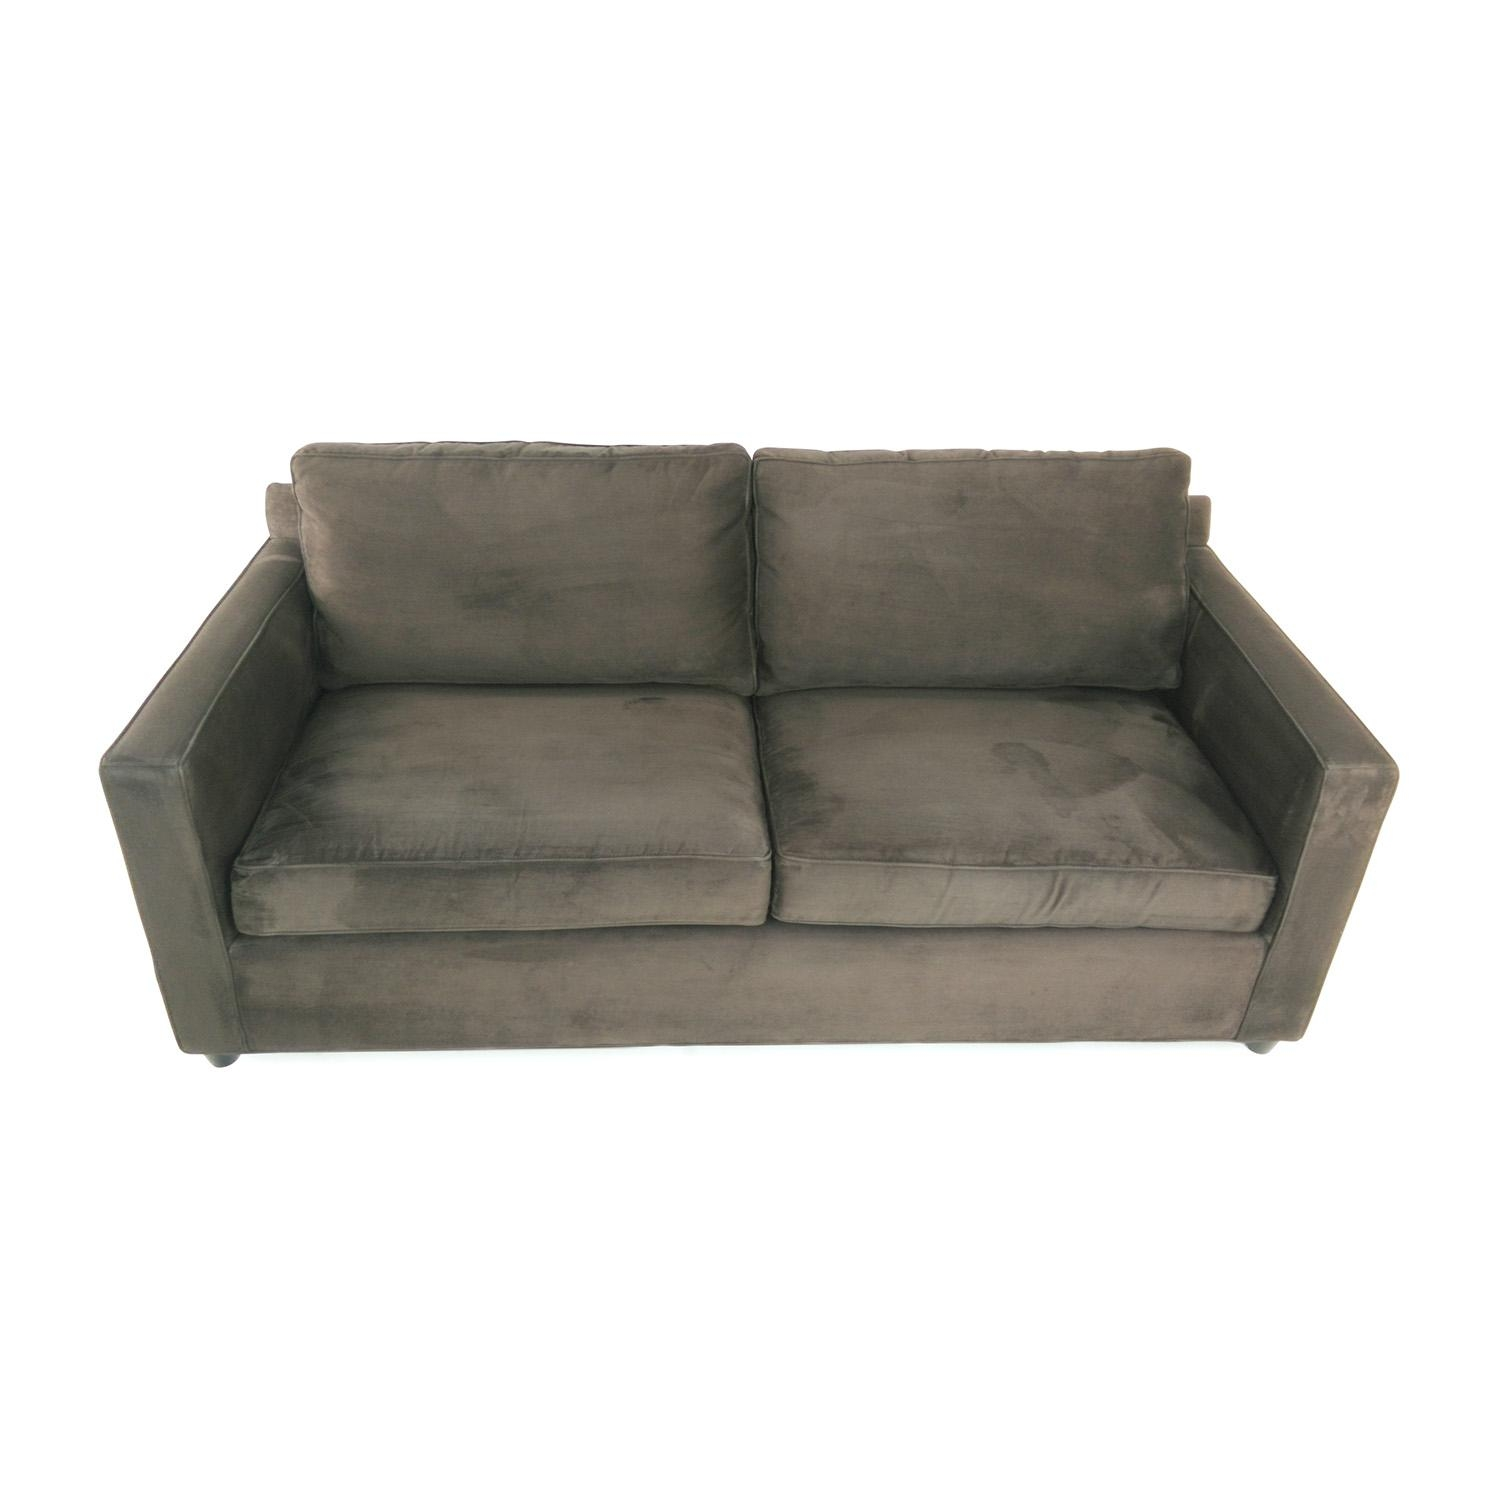 57% Off - Crate And Barrel Crate & Barrel Davis Sofa / Sofas pertaining to Davis Sofas